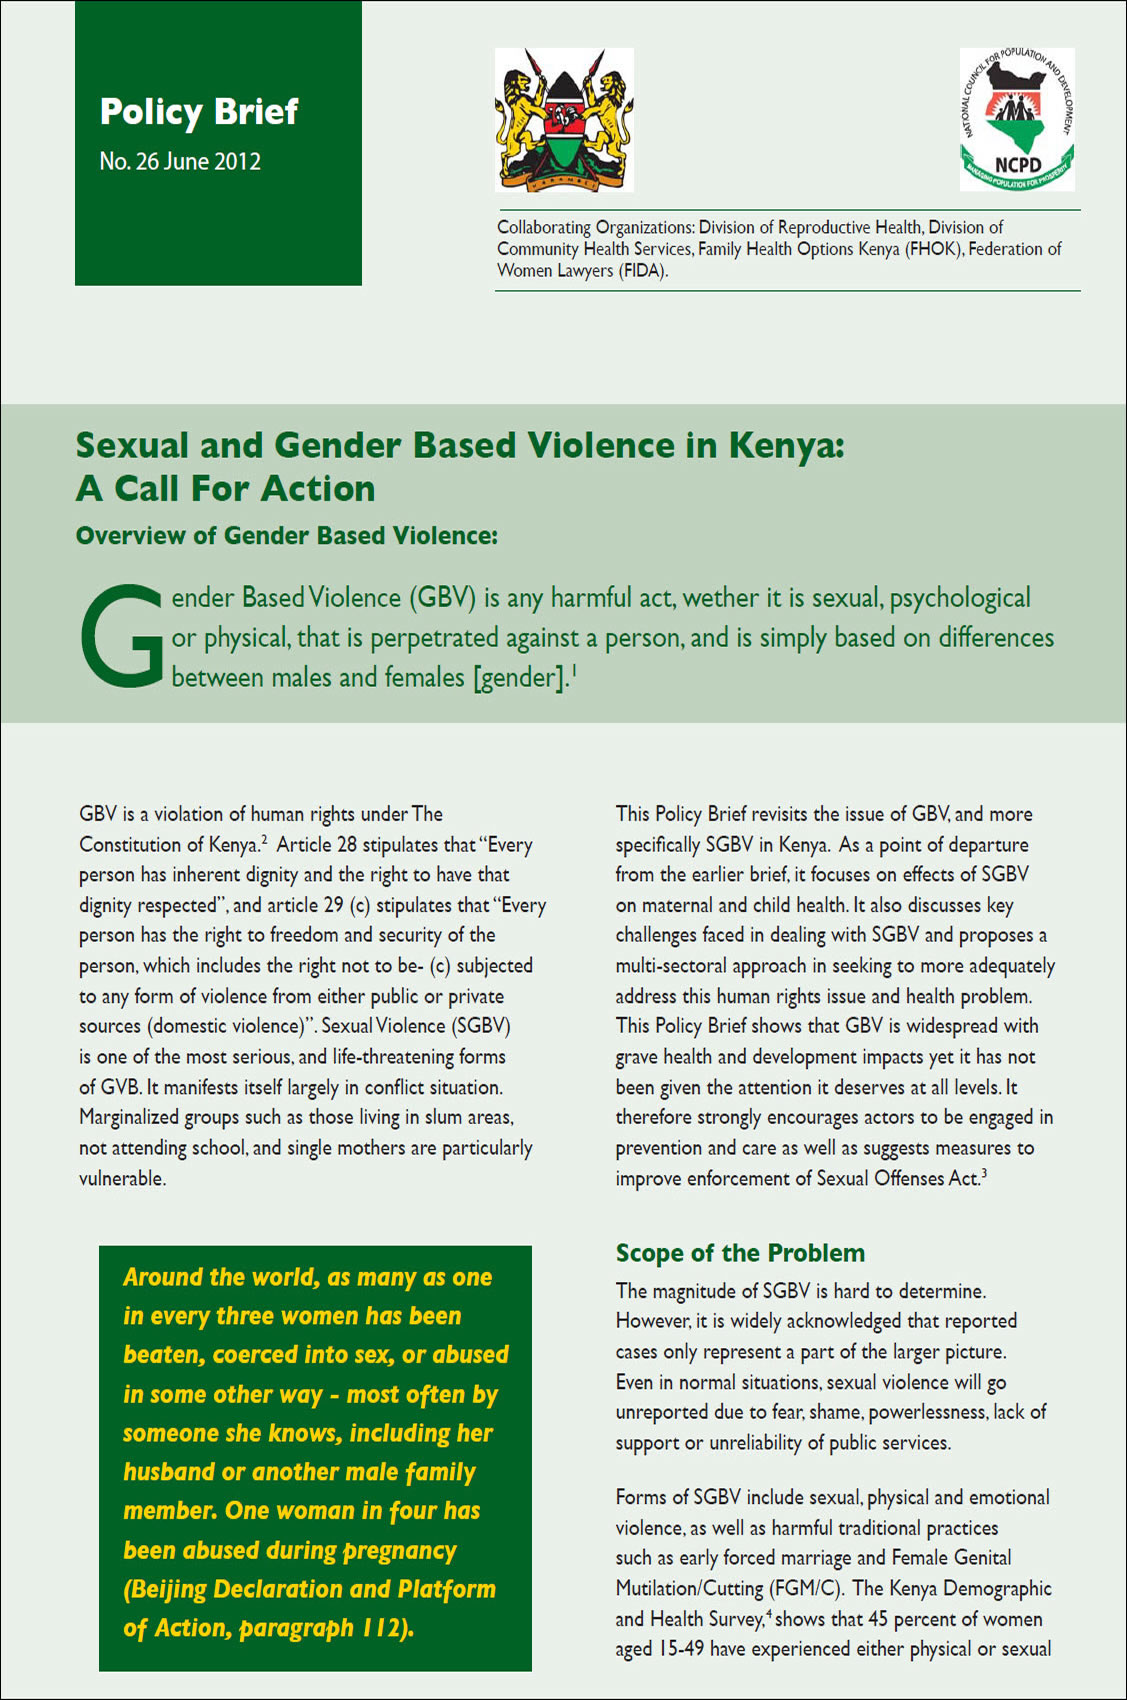 SEXUAL AND GENDER BASED VIOLENCE IN KENYA: A CALL FOR ACTION